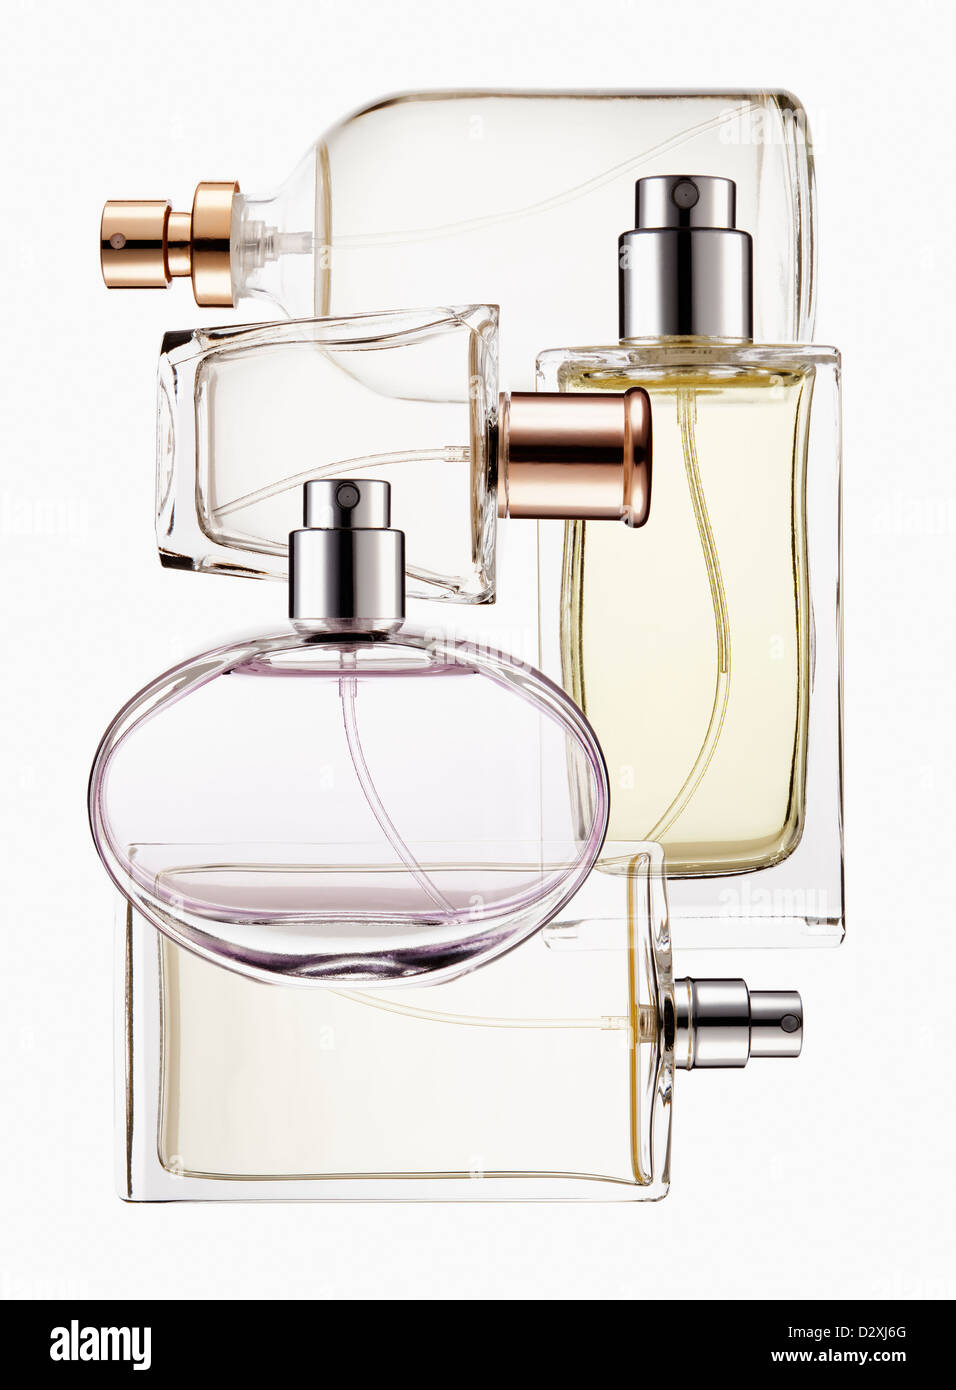 Close up of perfume bottles - Stock Image